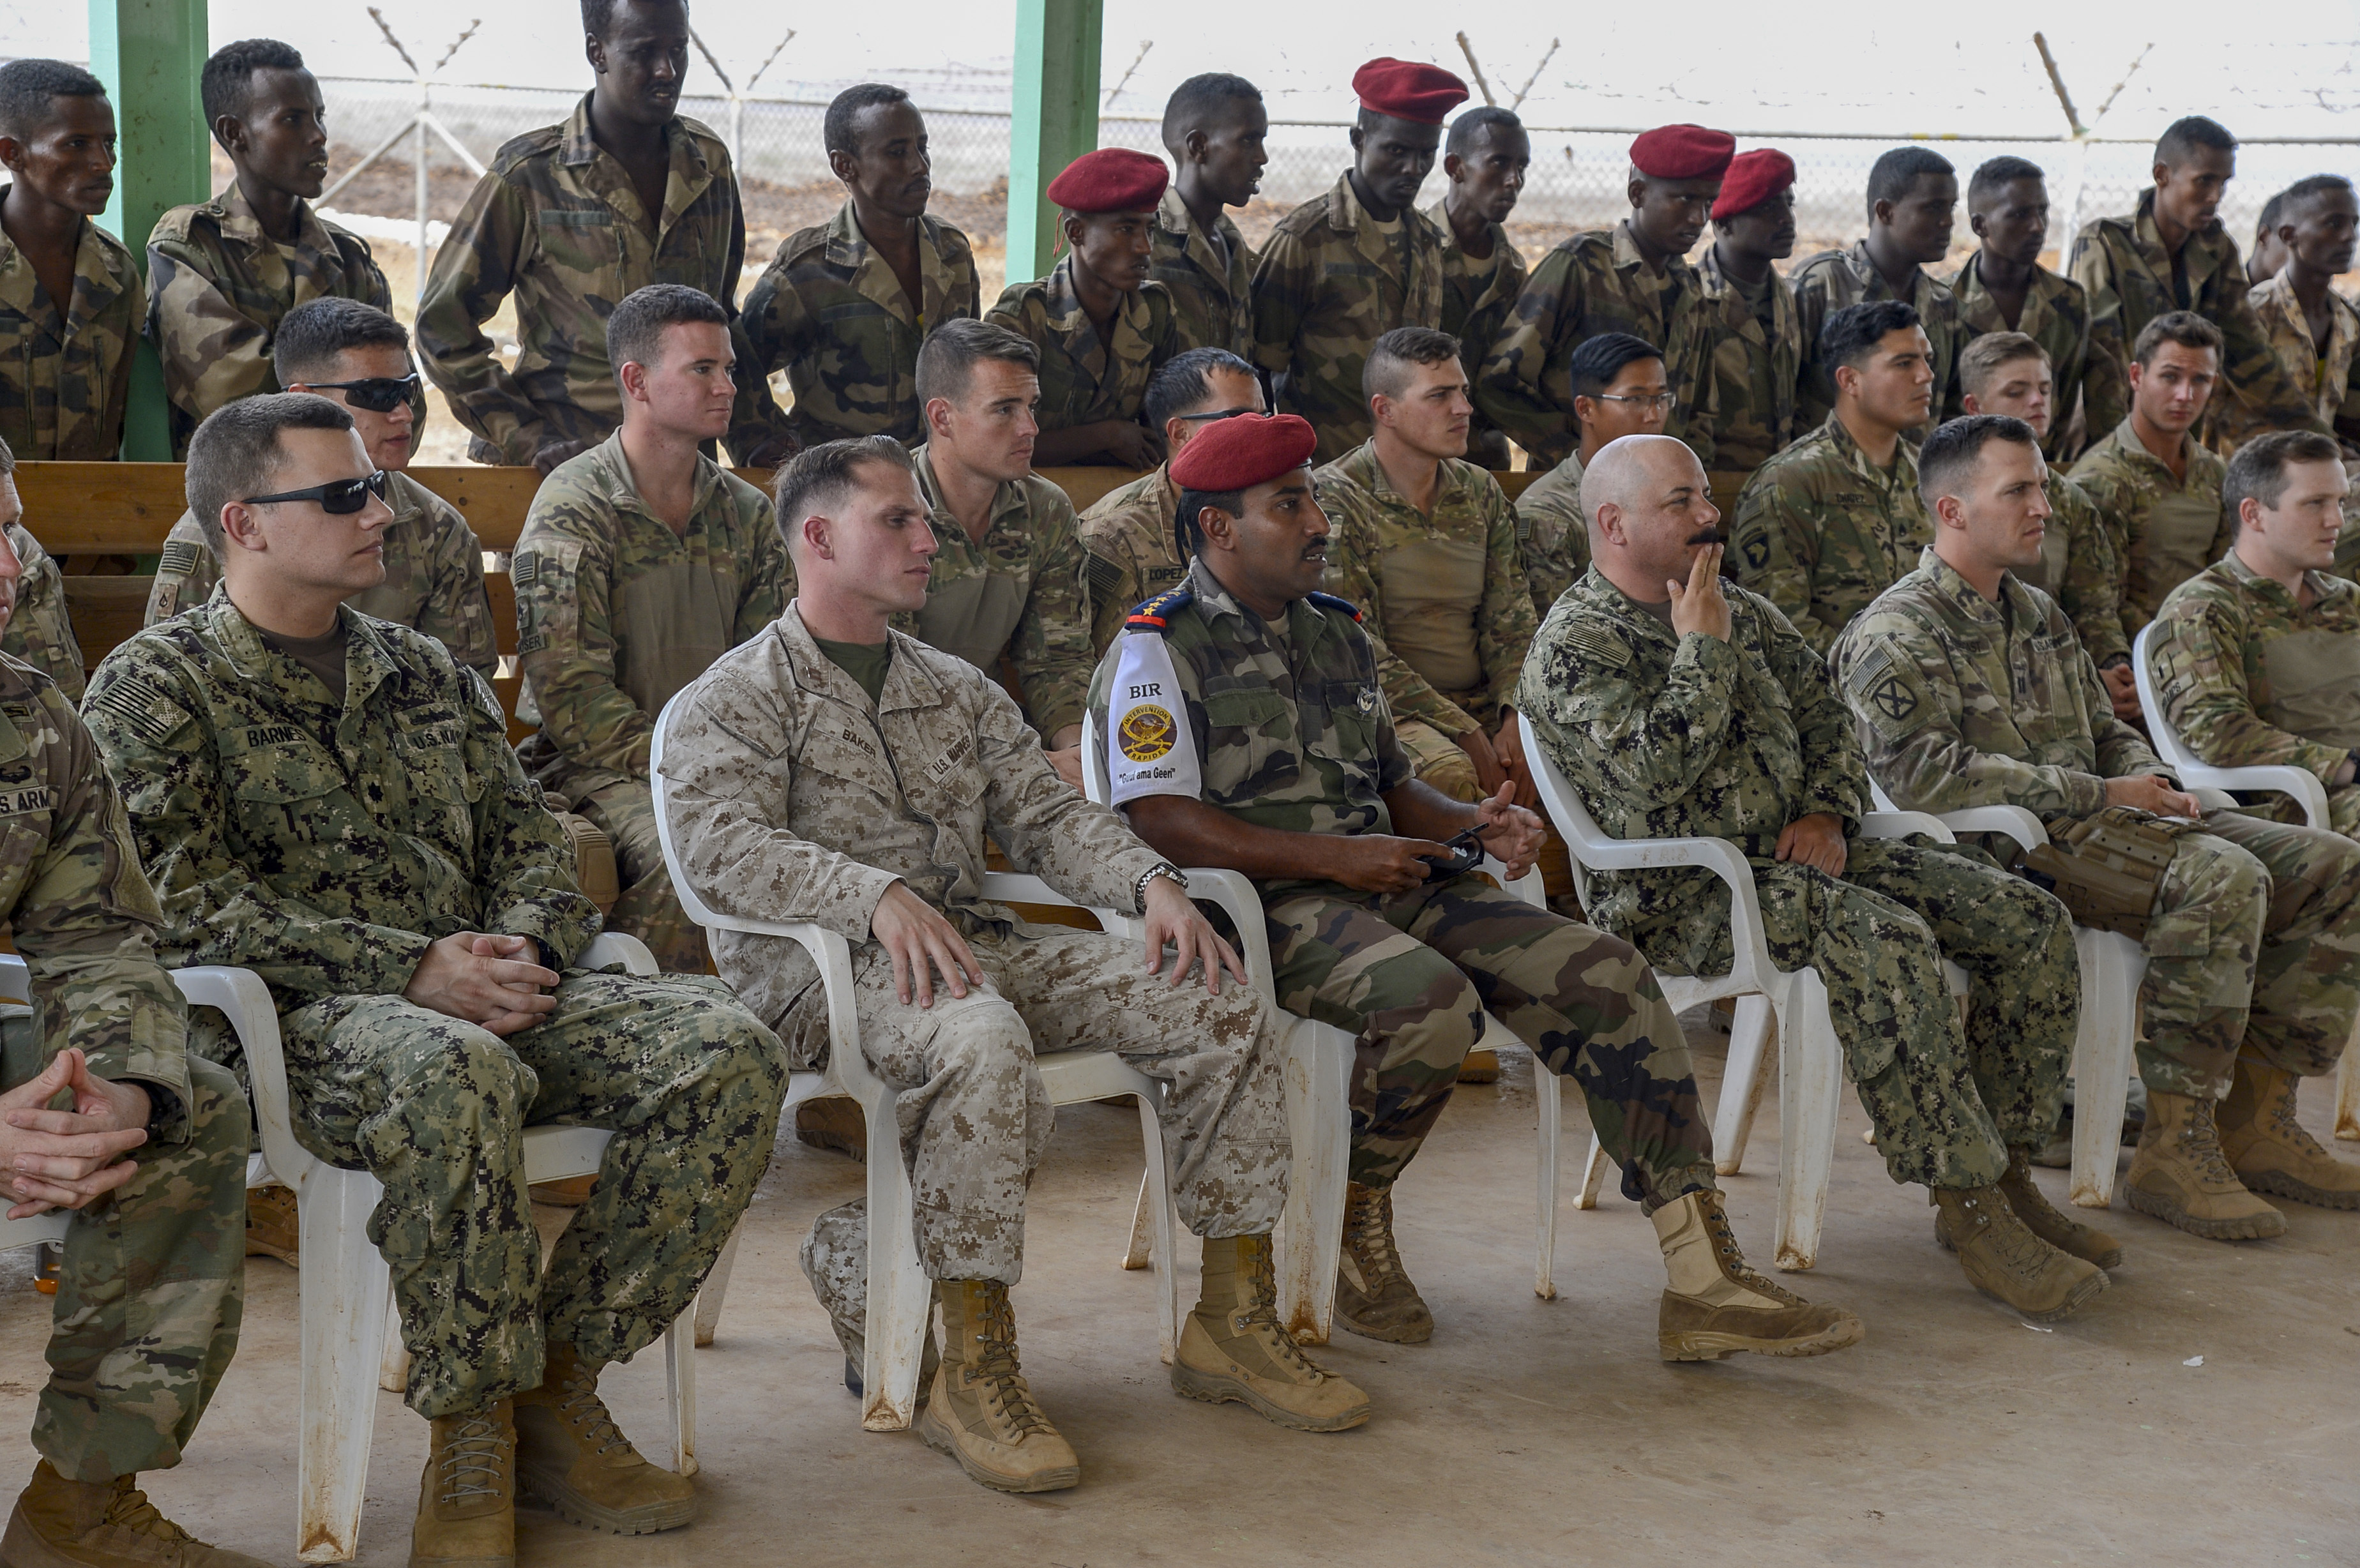 Members of the Djiboutian Army's Rapid Intervention Battalion (RIB) and Combined Joint Task Force-Horn of Africa attend a celebration for new RIB graduates at a training site outside Djibouti City, June 28, 2018. The RIB is a U.S. Army trained unit that was formed to respond to crises and promote regional security and stability in East Africa. (U.S. Navy Photo by Mass Communication Specialist 2nd Class Timothy M. Ahearn)